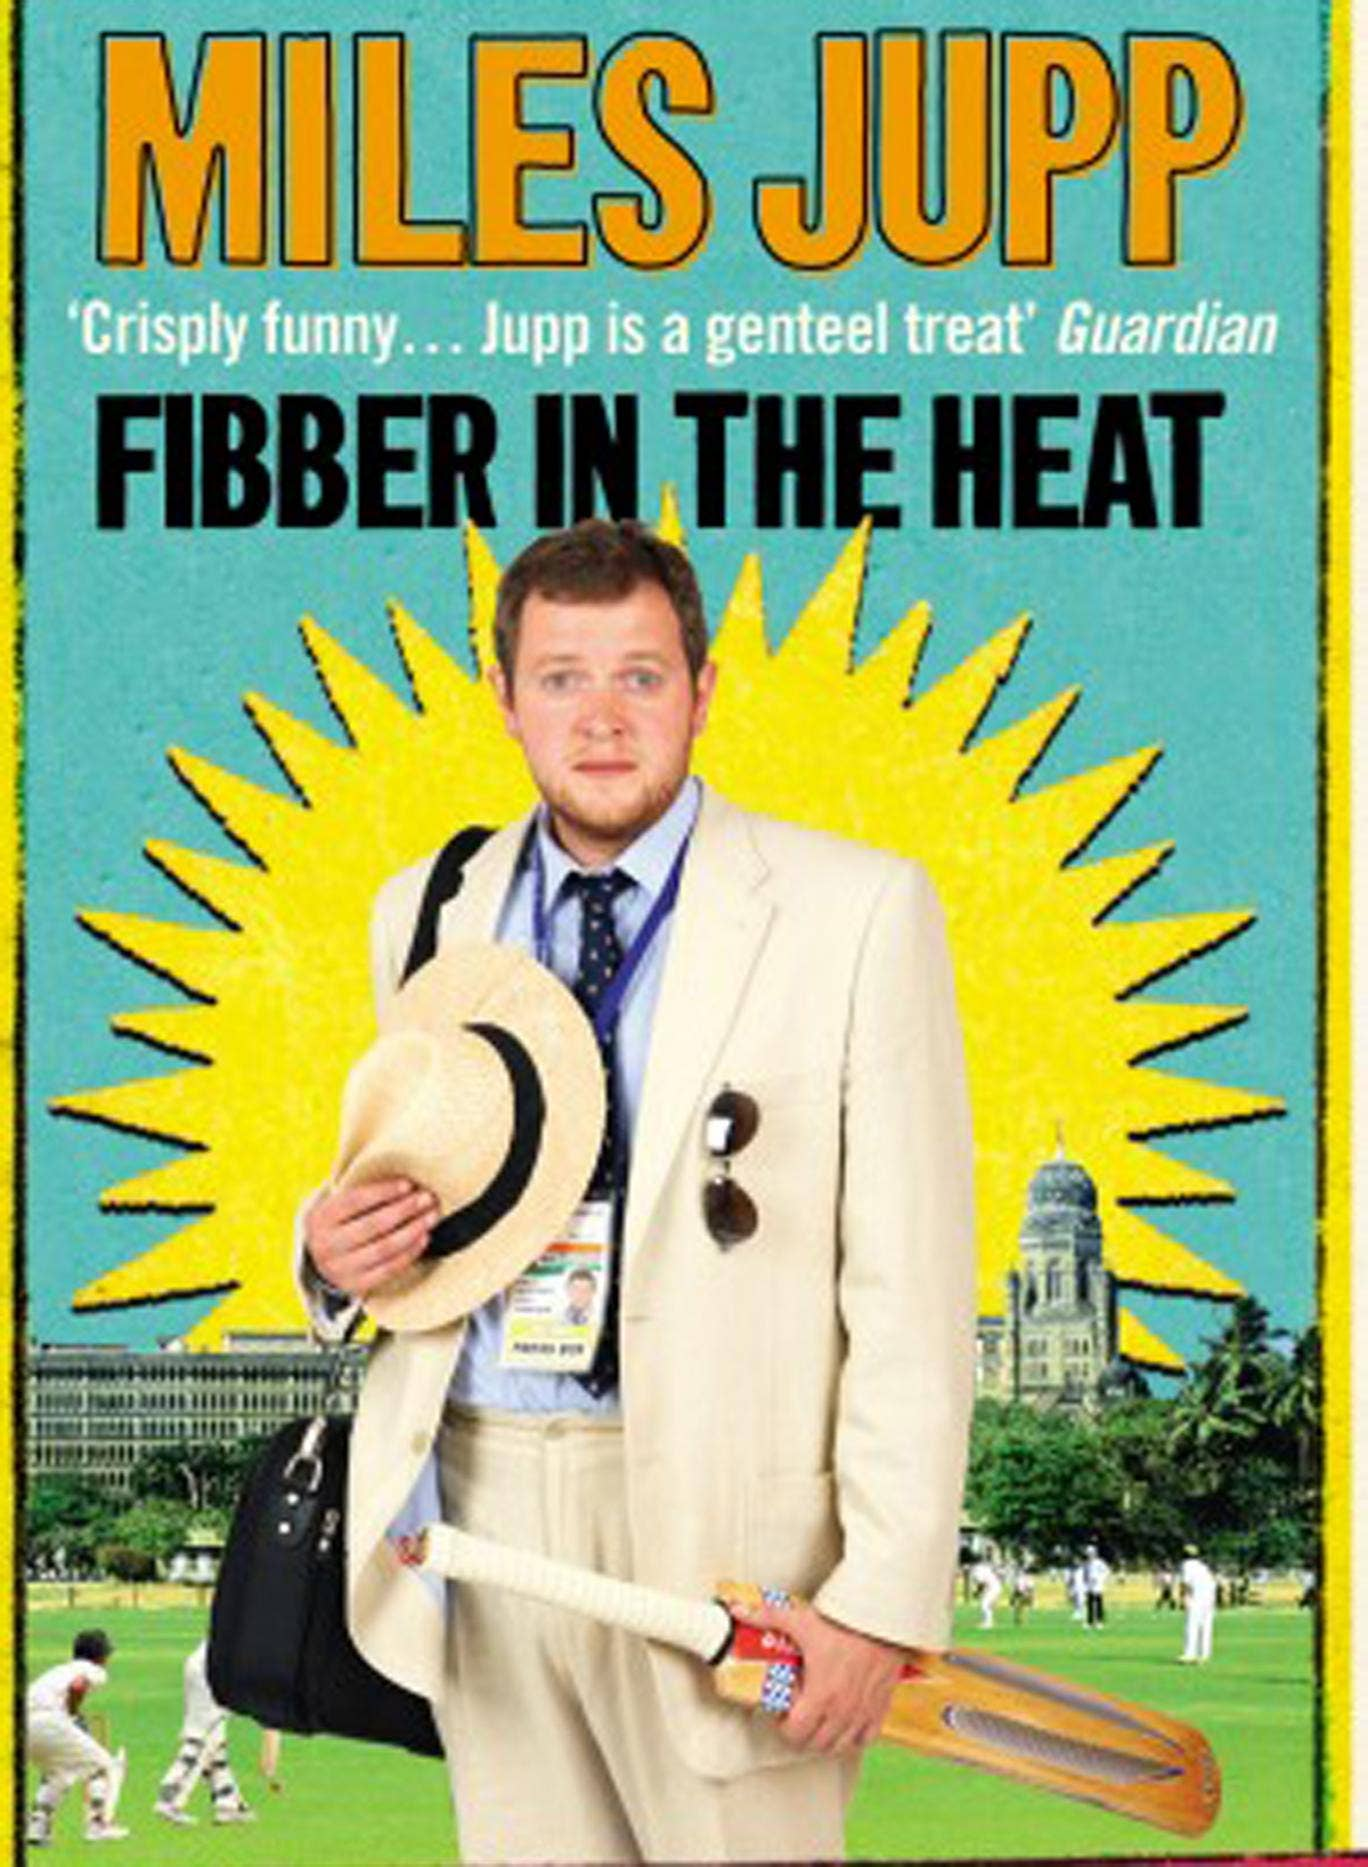 Fibber in the Heat, by Miles Jupp